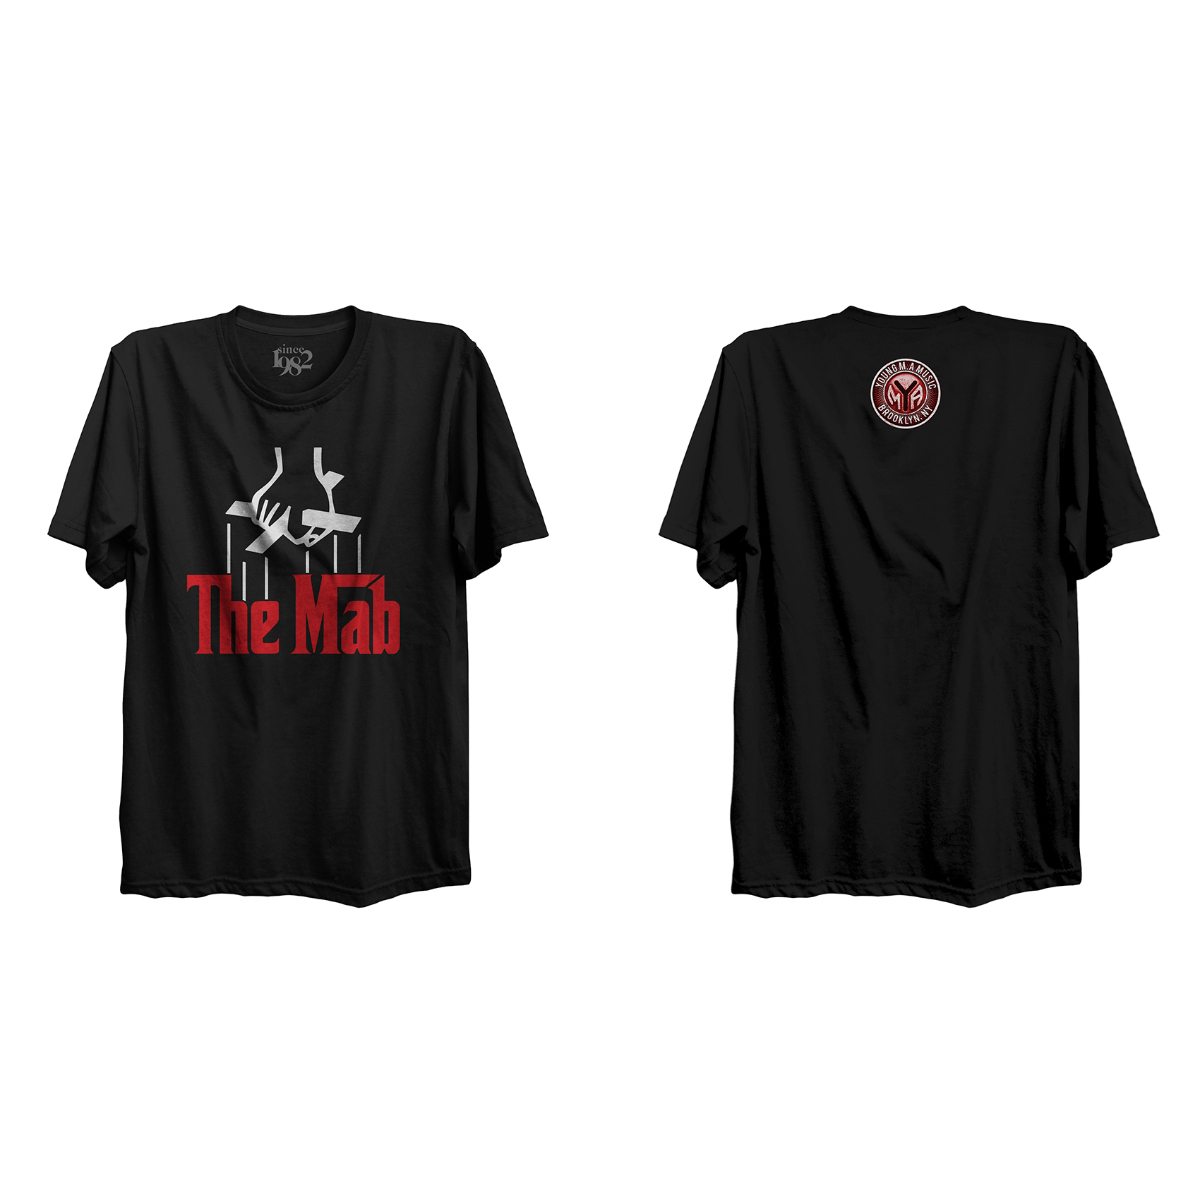 The Mab T-Shirt